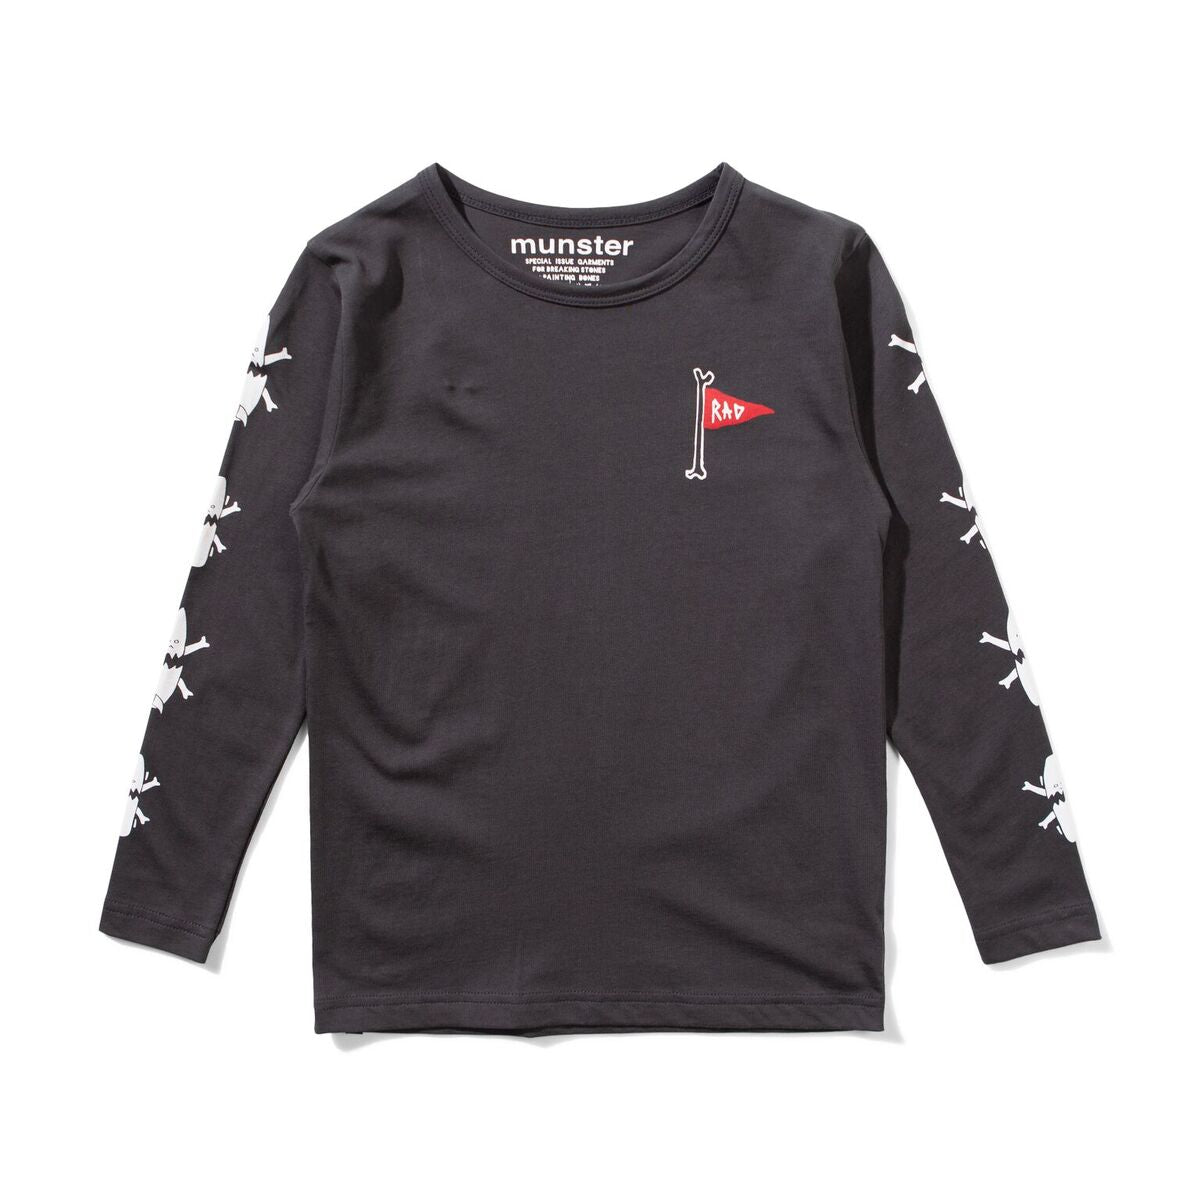 MUNSTER KIDS Long Sleeve Shirt with Flag